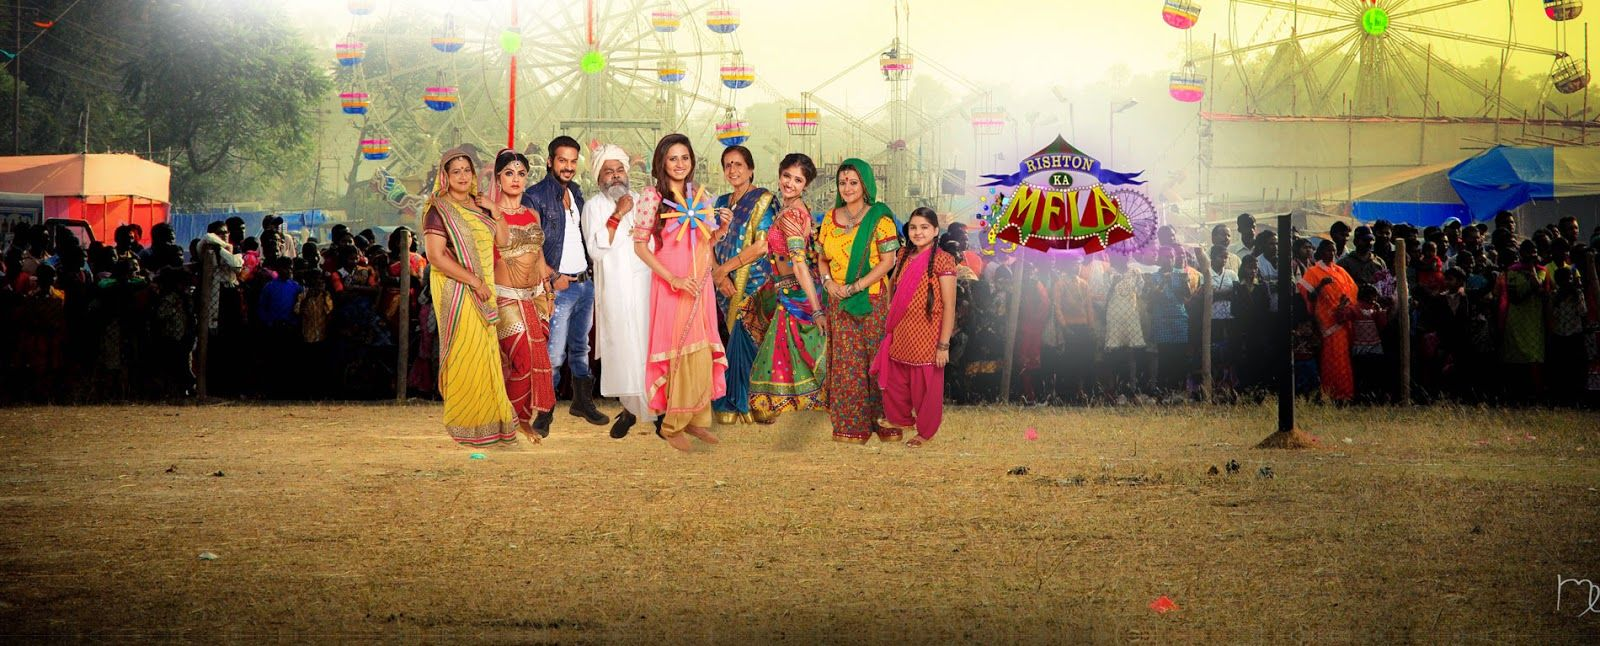 Ramayan zee tv promo hd wallpapers photos pictures - Rishton Ka Mela Zee Tv Serial Wiki Full Star Cast And Crew Promos